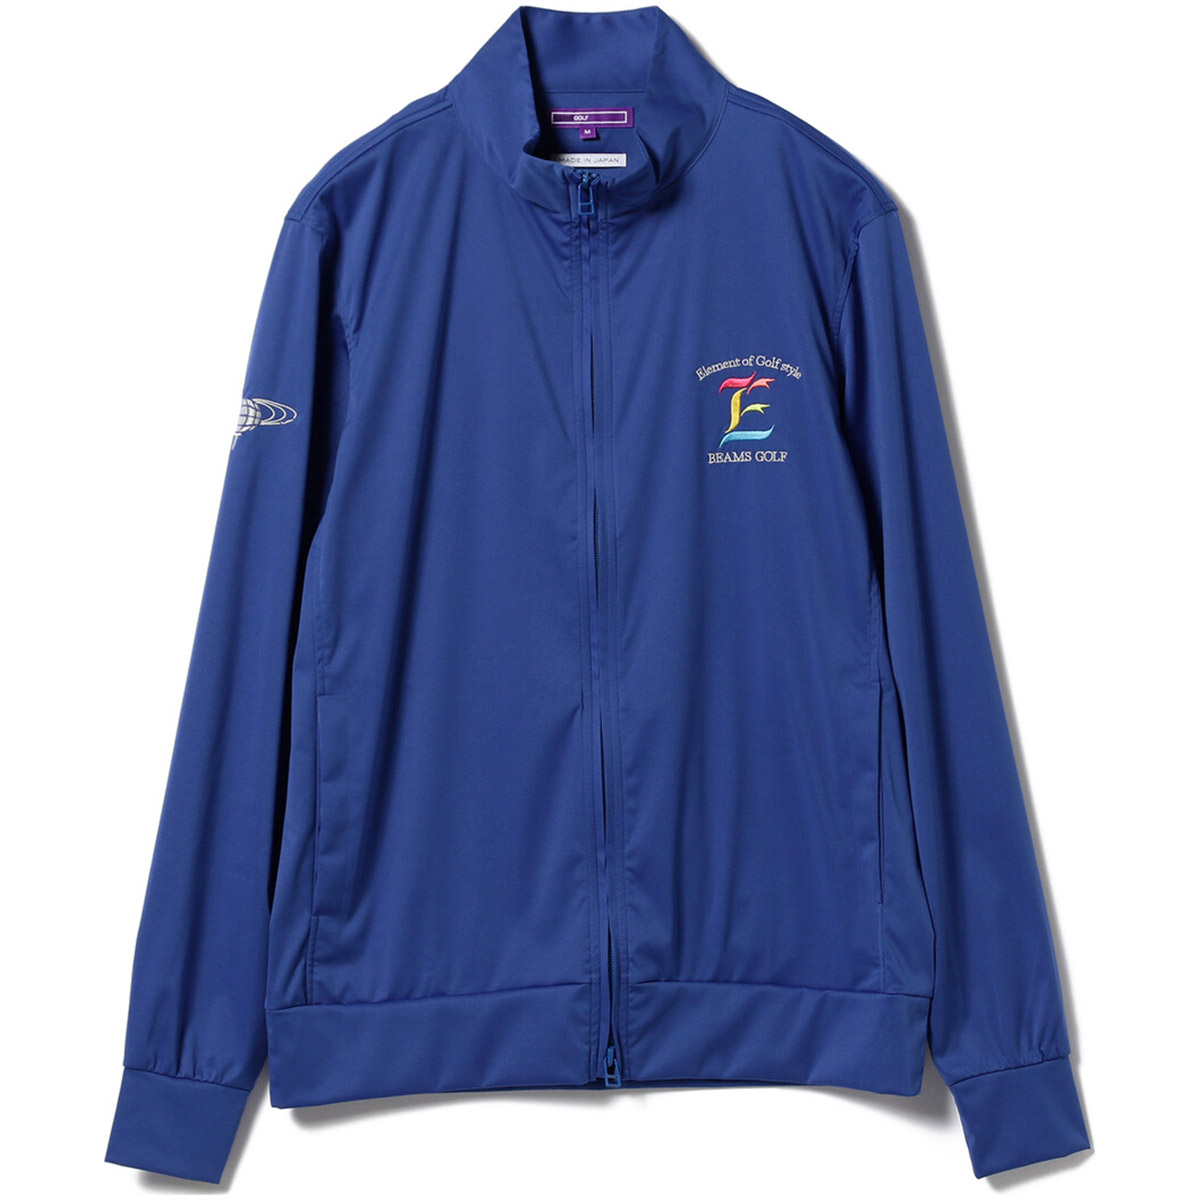 BEAMS GOLF PURPLE LABEL ELEMENT エアシャット ブルゾン